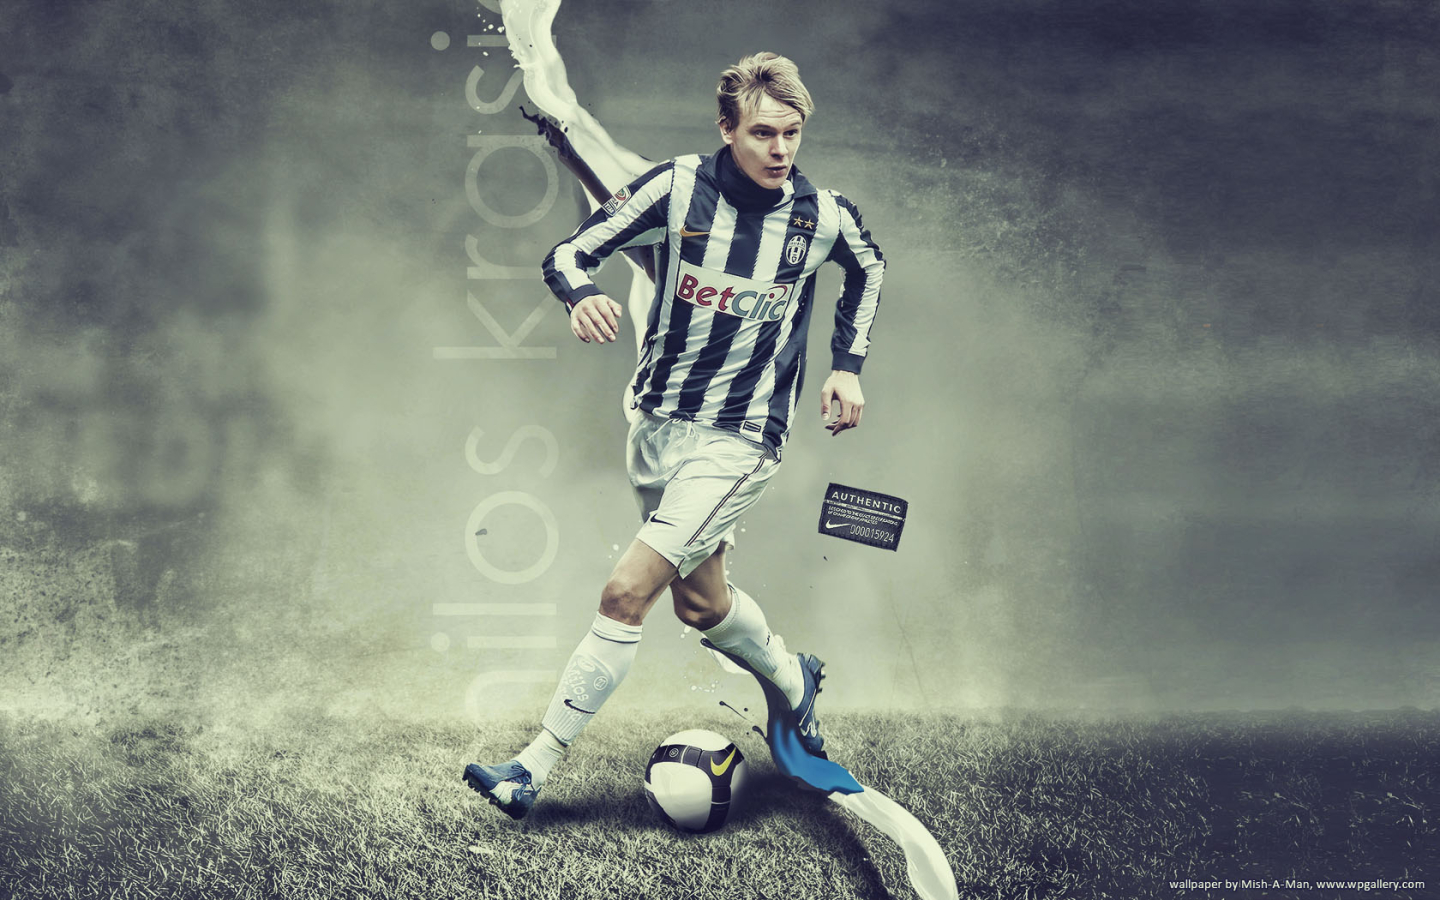 Milos Krasic for 1440 x 900 widescreen resolution